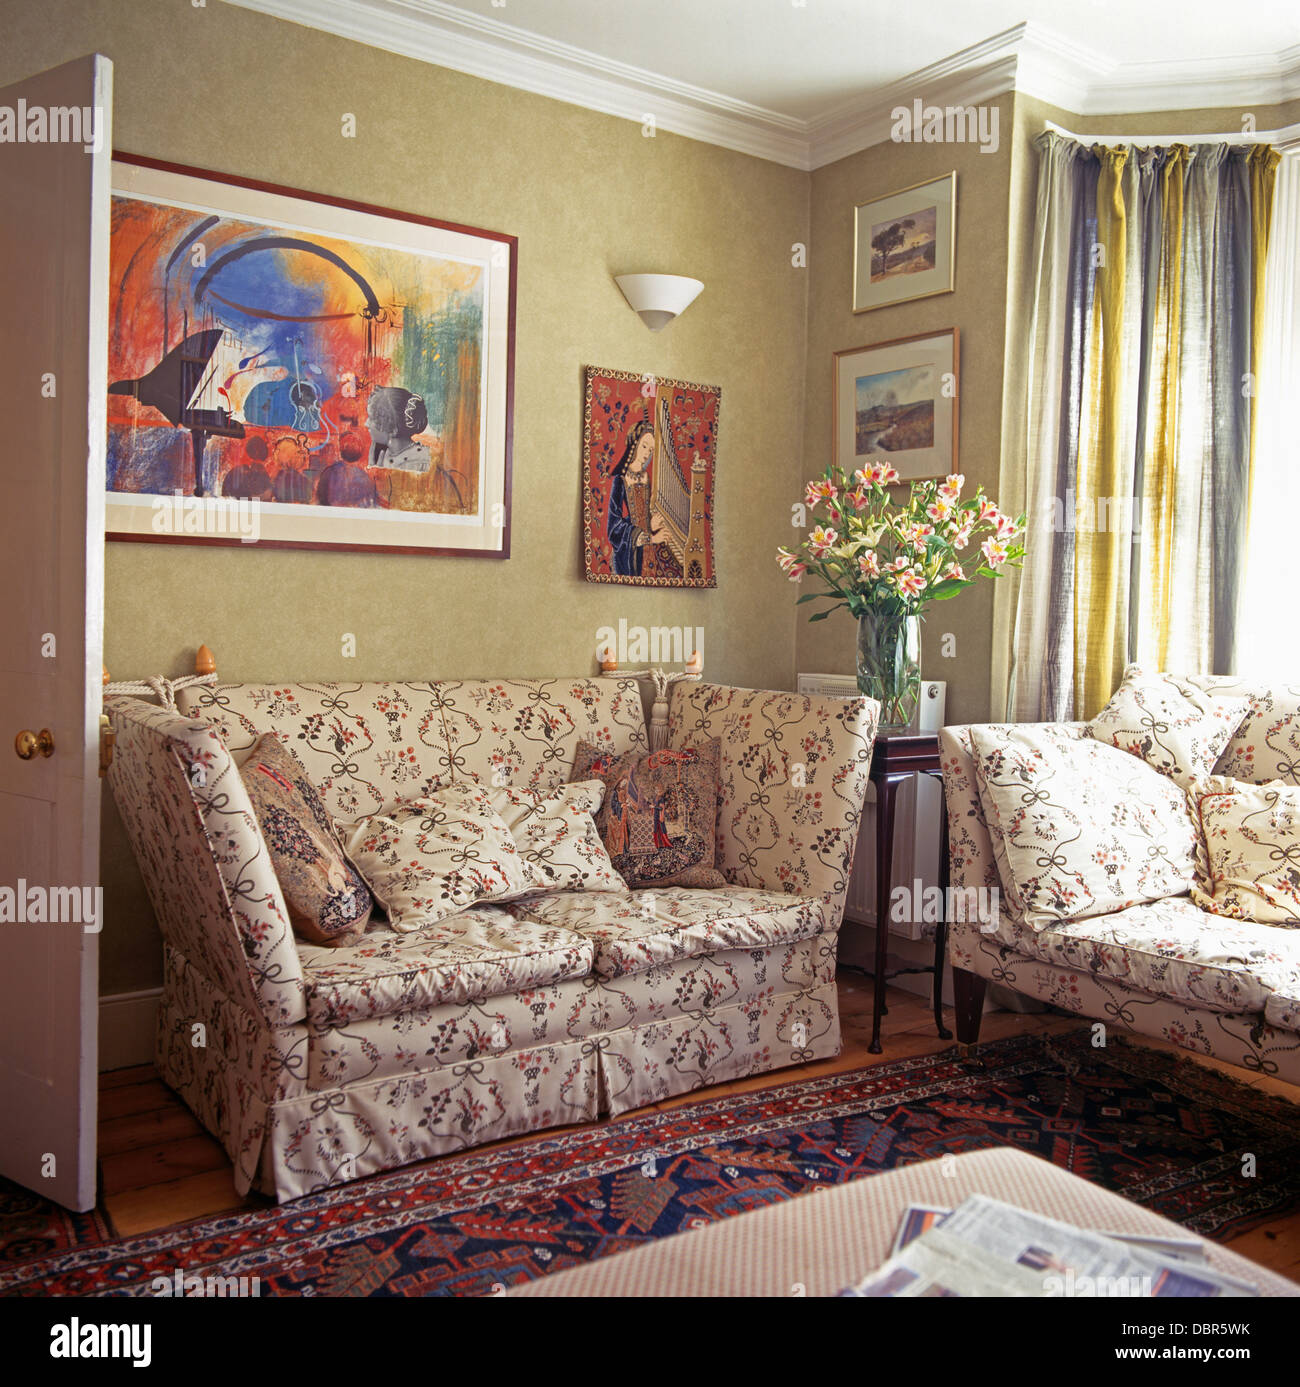 Colorful Abstract Painting Above Floral Knole Sofa In